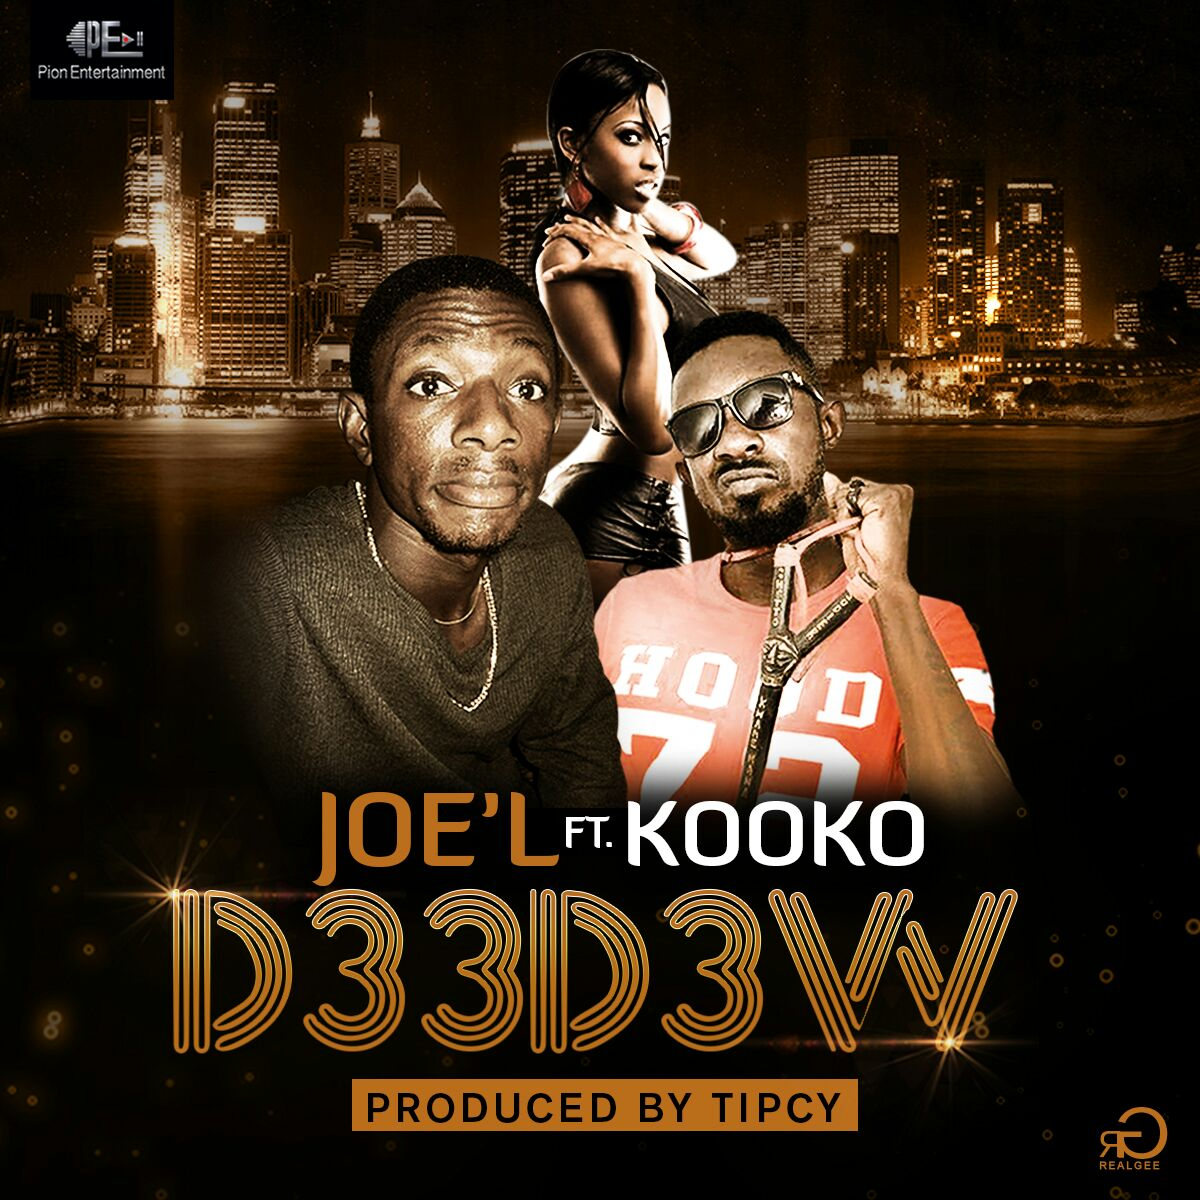 JoelNervelies Ft. Kooko - Deedew (Sweet) (Prod. By Tipcy)